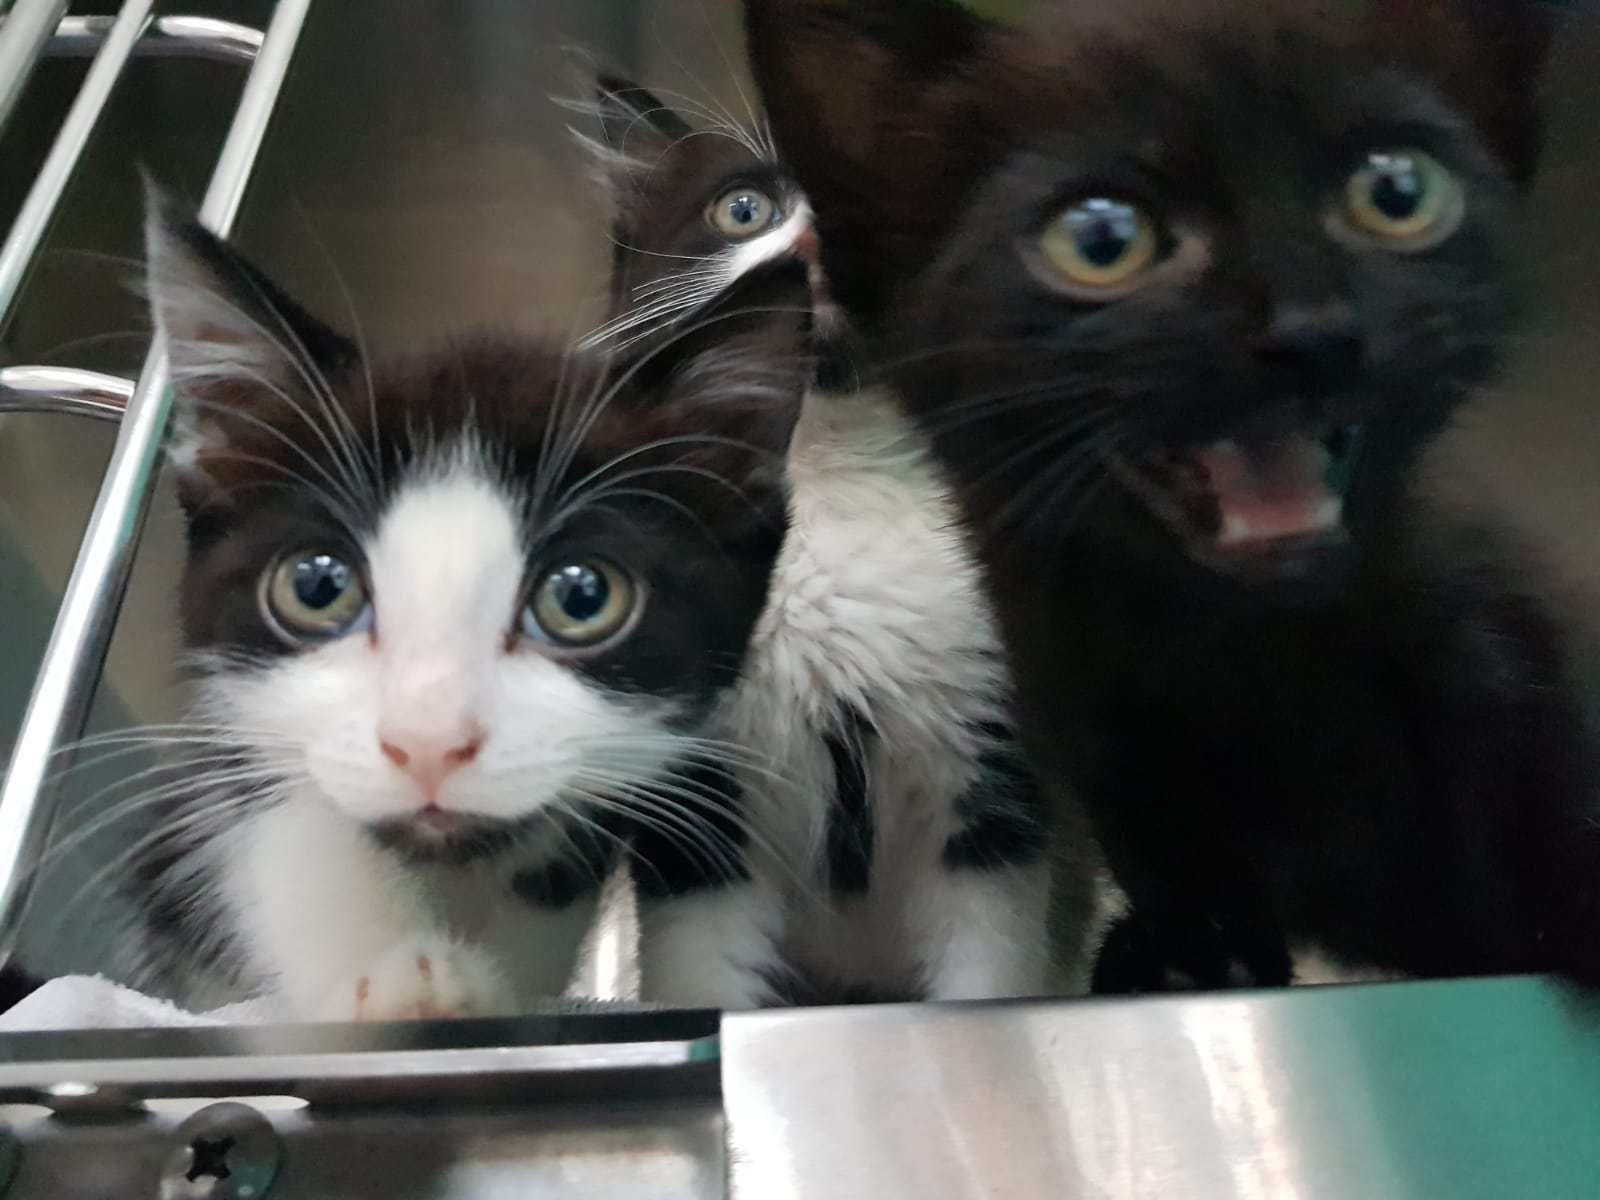 Eight Week Old Abandoned Kittens Had The Worst Flea Infestation Mayhew Vets Have Ever Seen Cat Has Fleas Flea Infestation Kittens